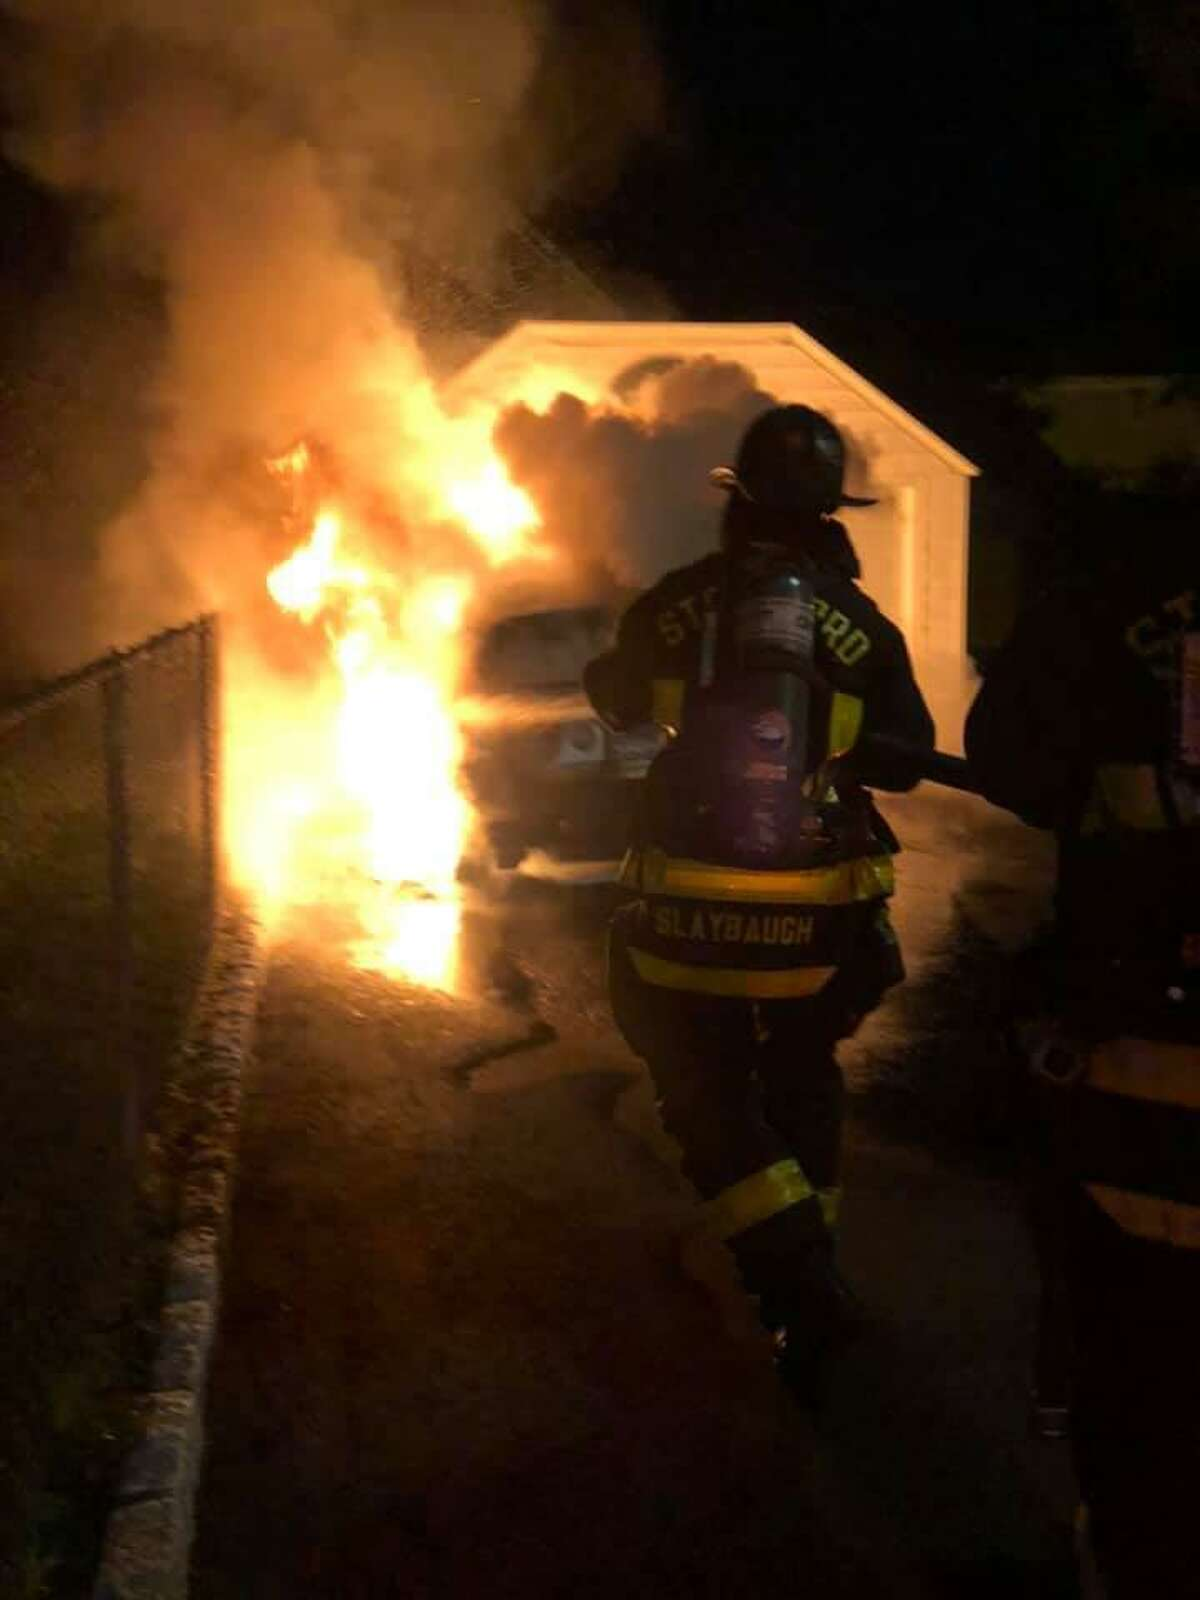 A car fire that spread to a garage on College Street was doused by Stratford firefighters shortly after midnight Sunday, Oct. 4, 2020.